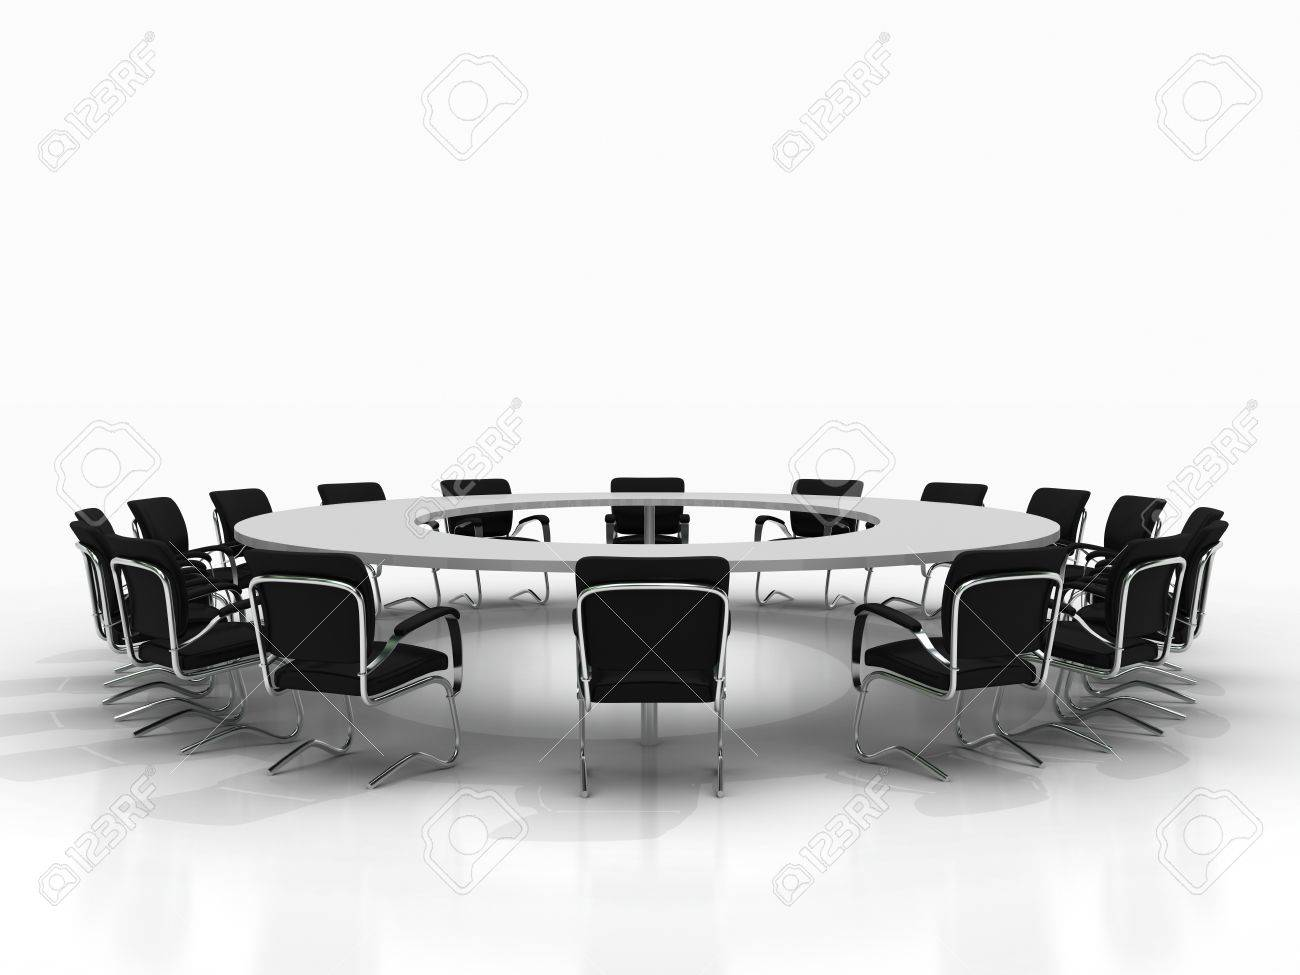 conference table and chairs isolated on white background Stock Photo - 8548255